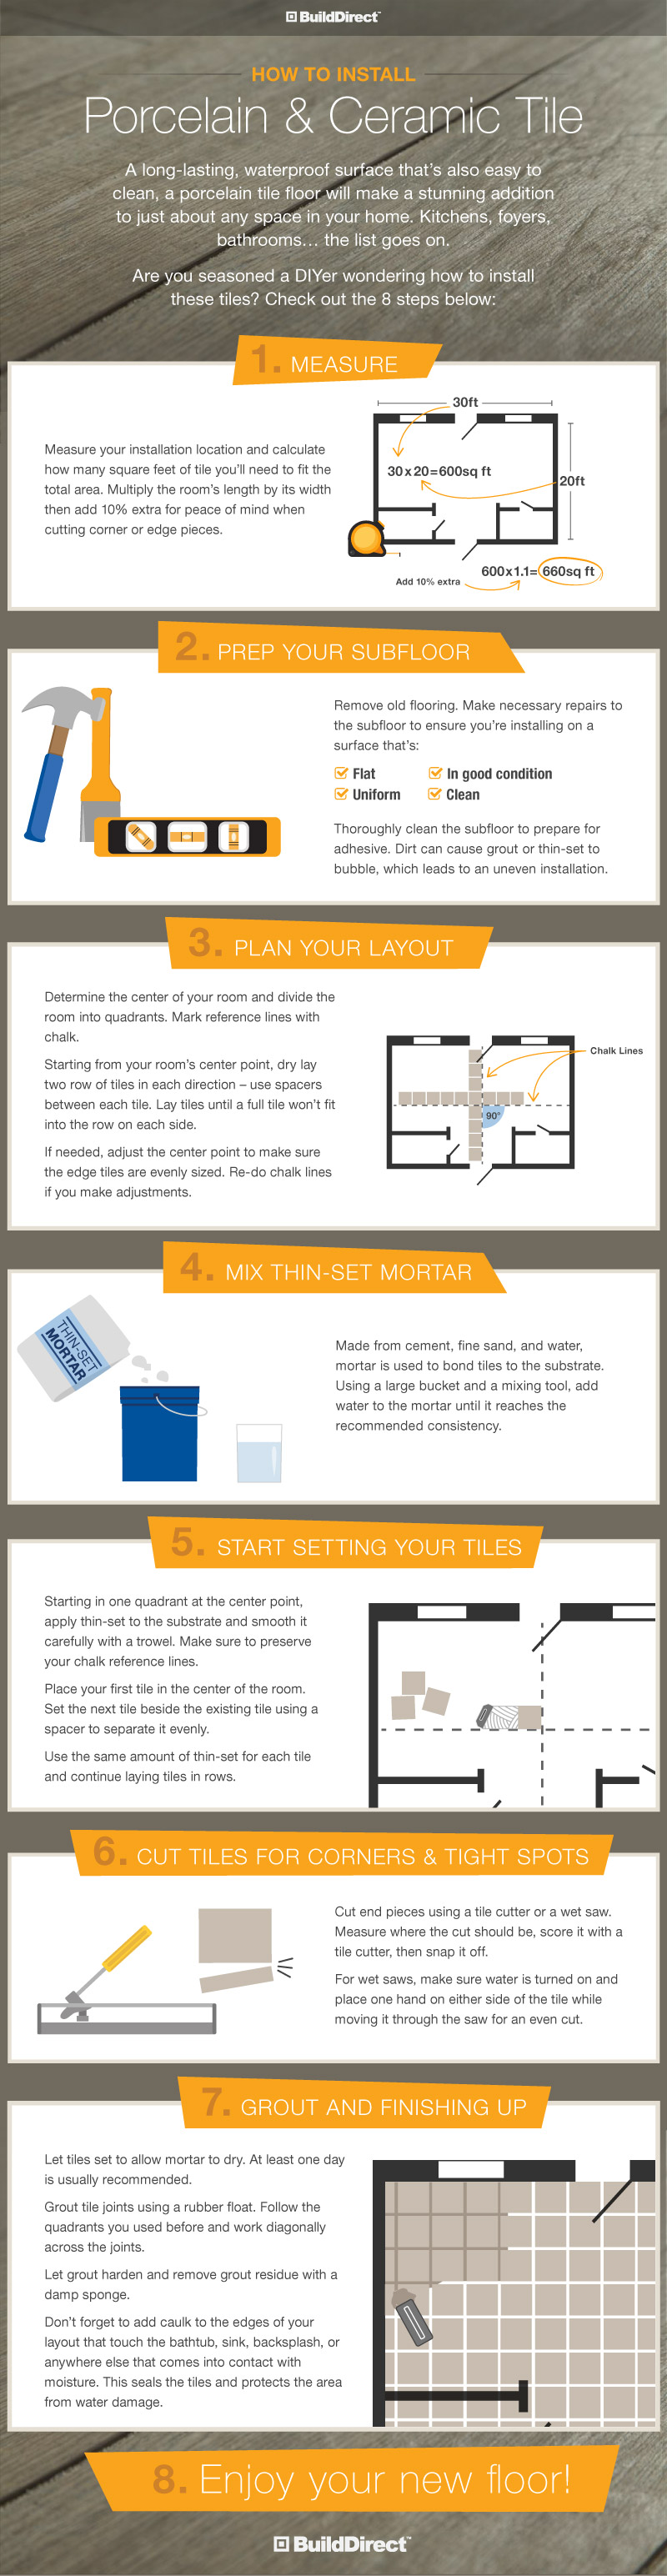 How to Lay Ceramic & Porcelain Tile [Infographic]